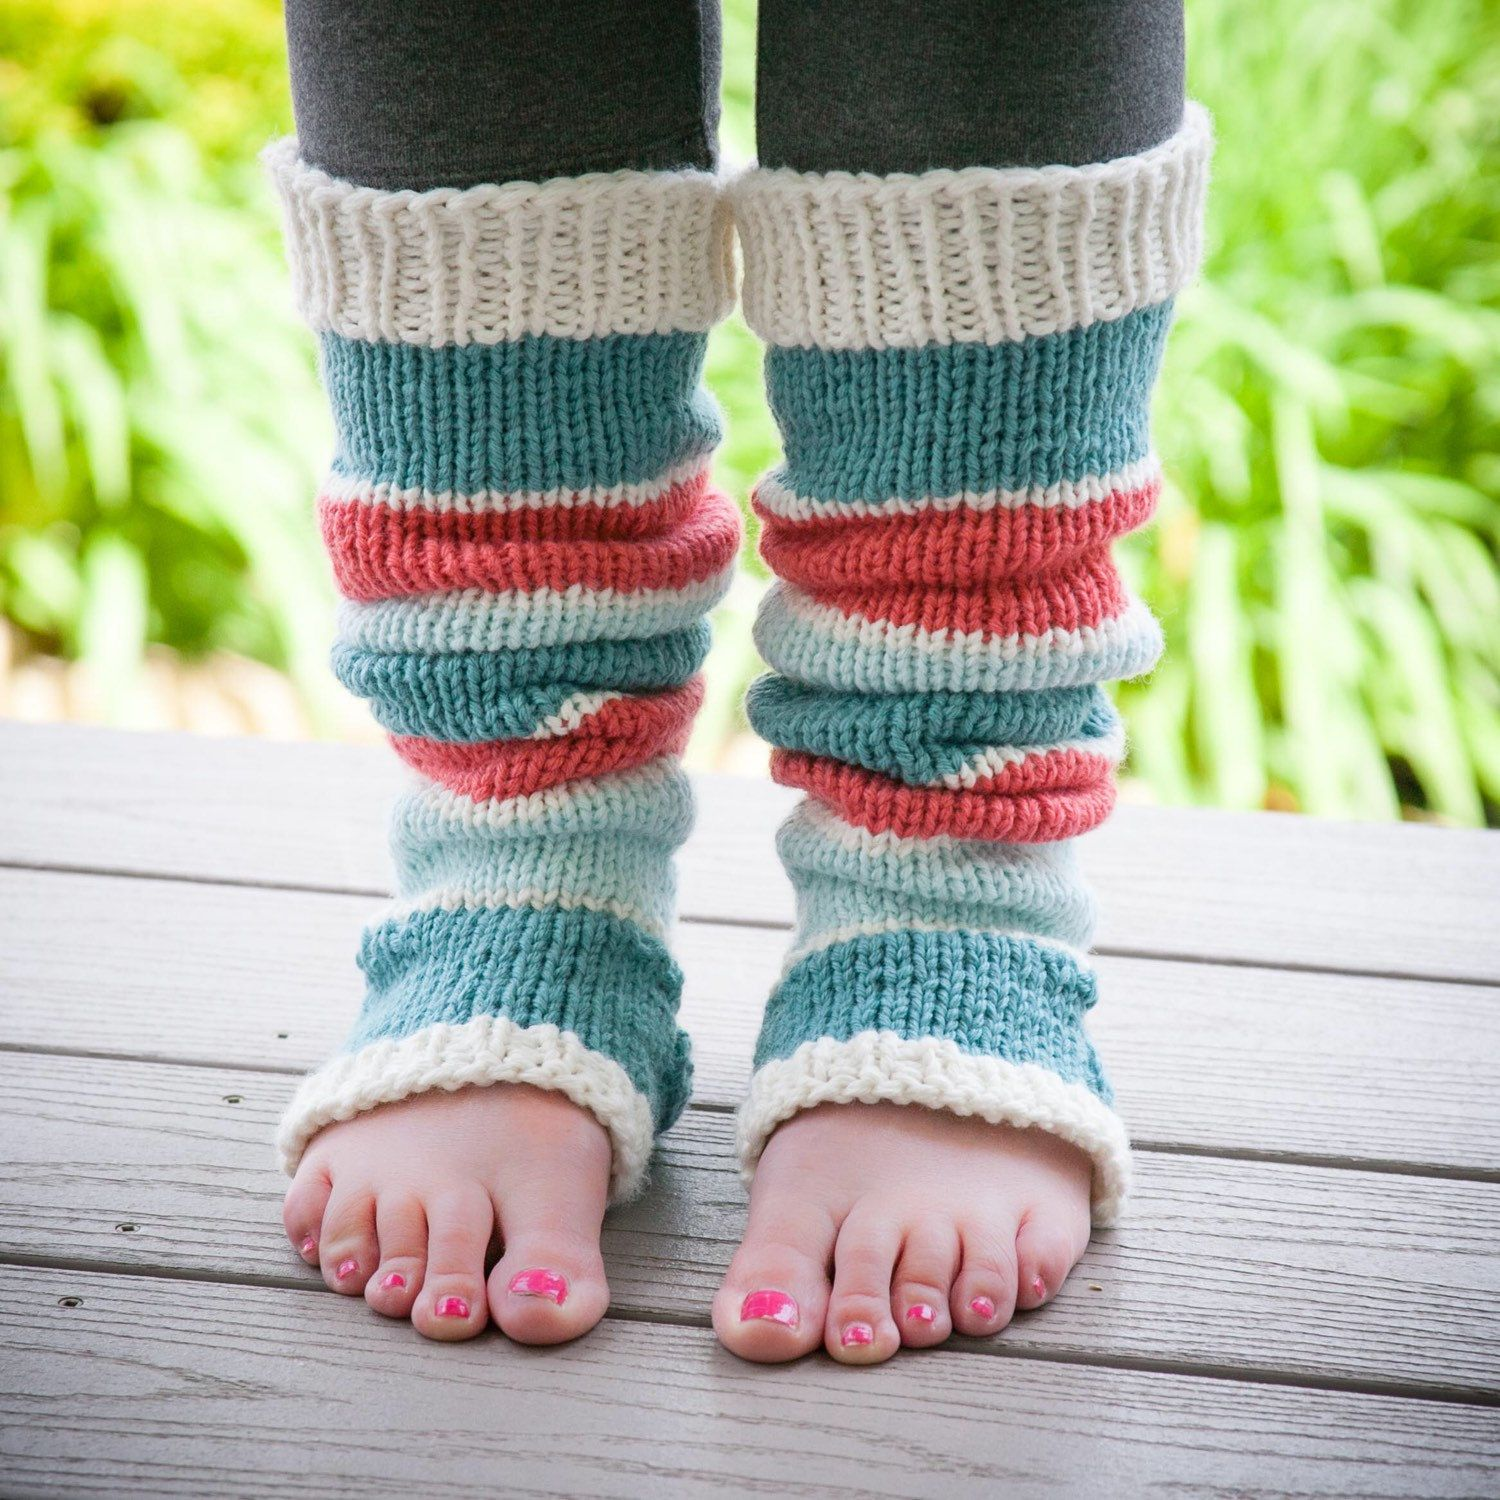 Loom knit legwarmer PATTERN, loom knit yoga legwarmers, loom knit ...